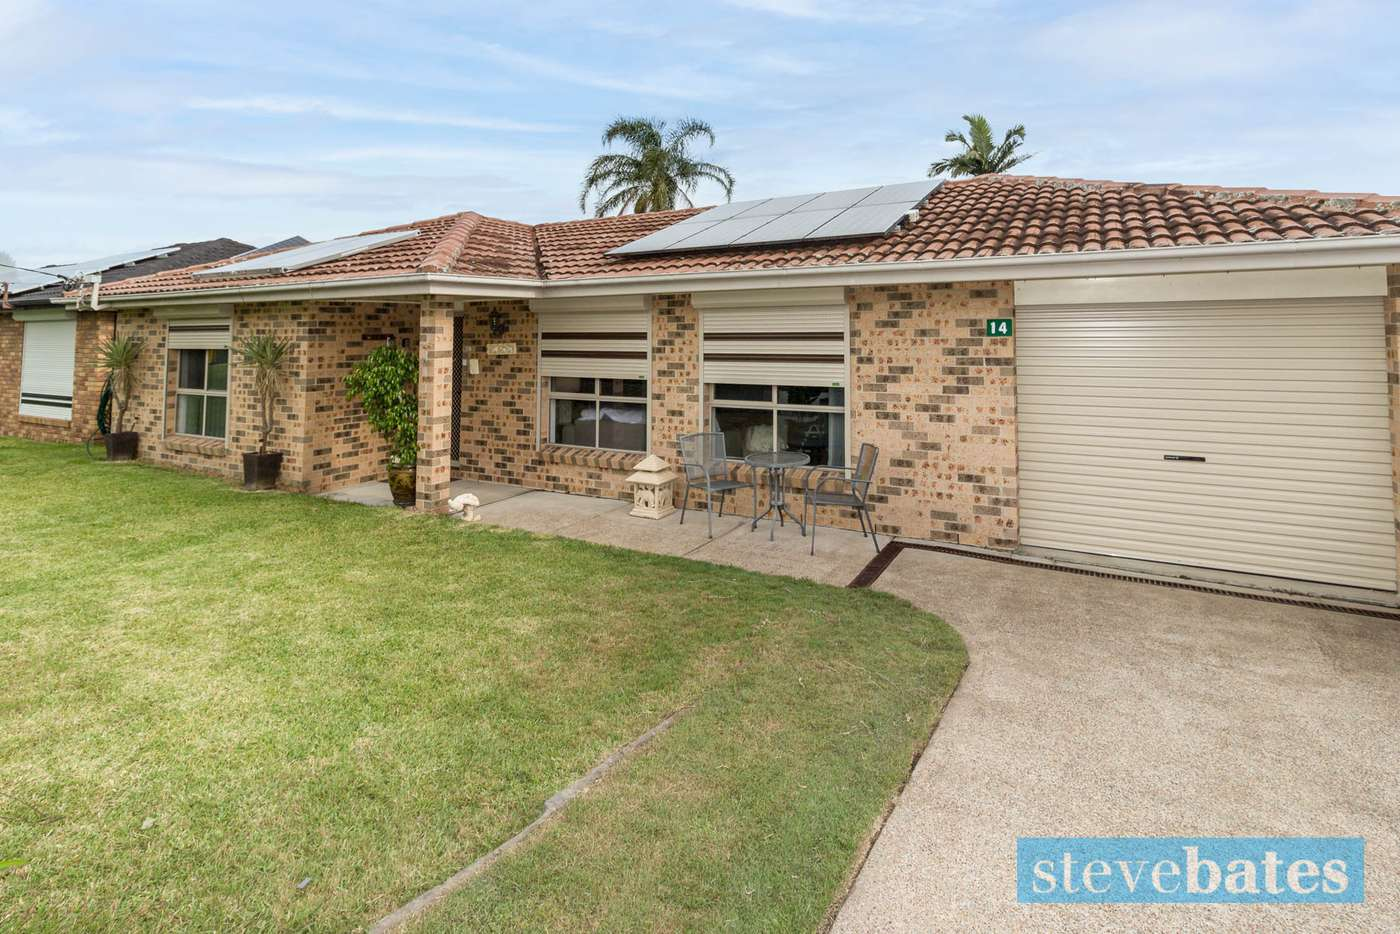 Main view of Homely house listing, 14 Greenslopes Drive, Raymond Terrace NSW 2324